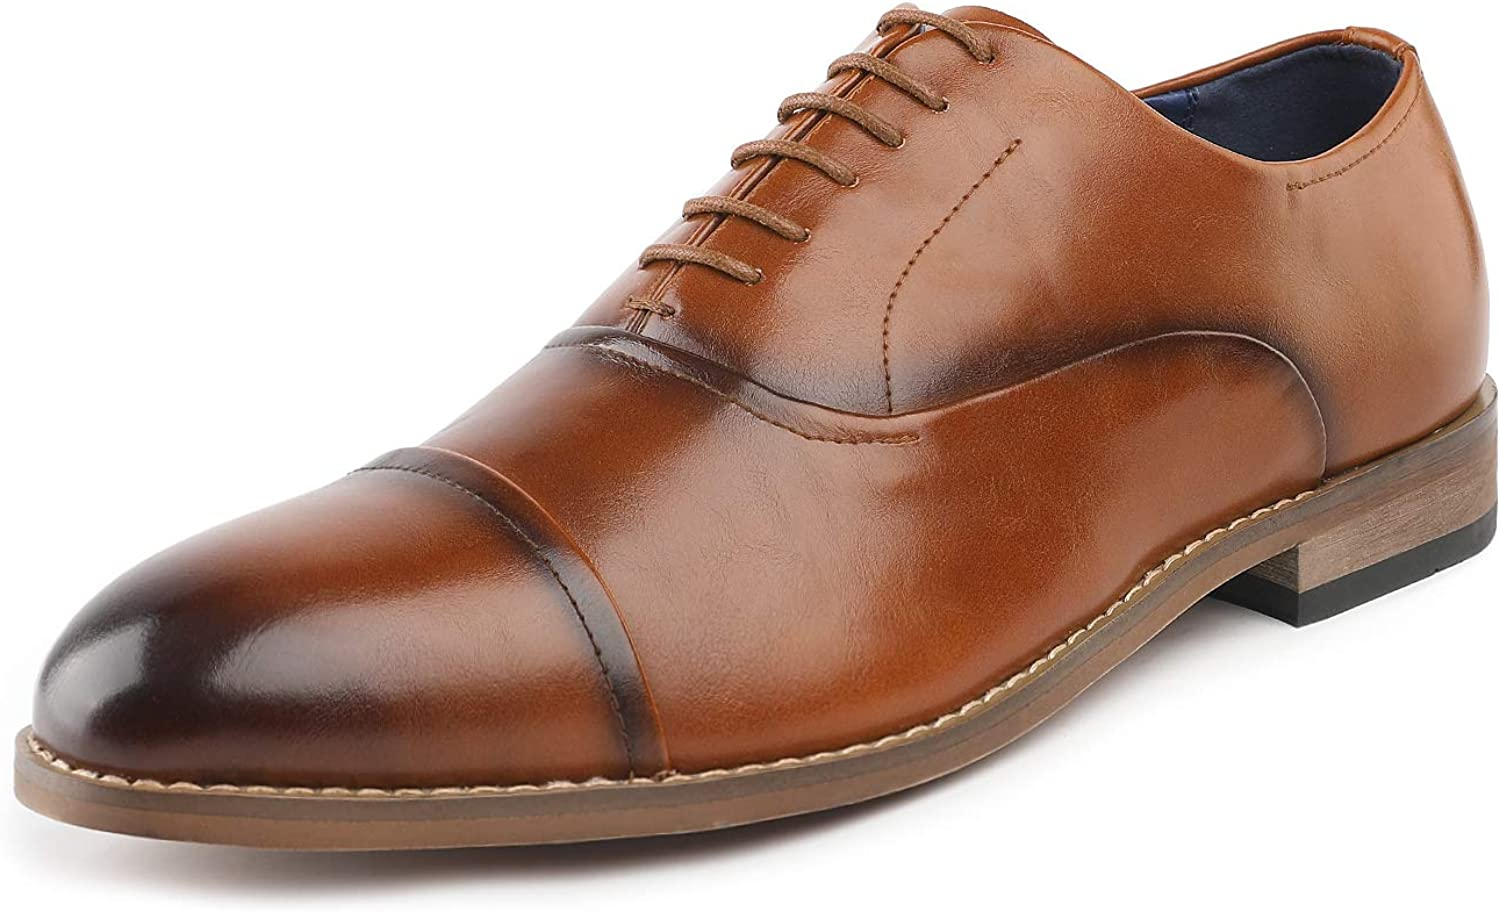 Bruno Marc Mens Formal Dress Shoes Leather Lined Plain Toe Lace Up Oxfords Shoes